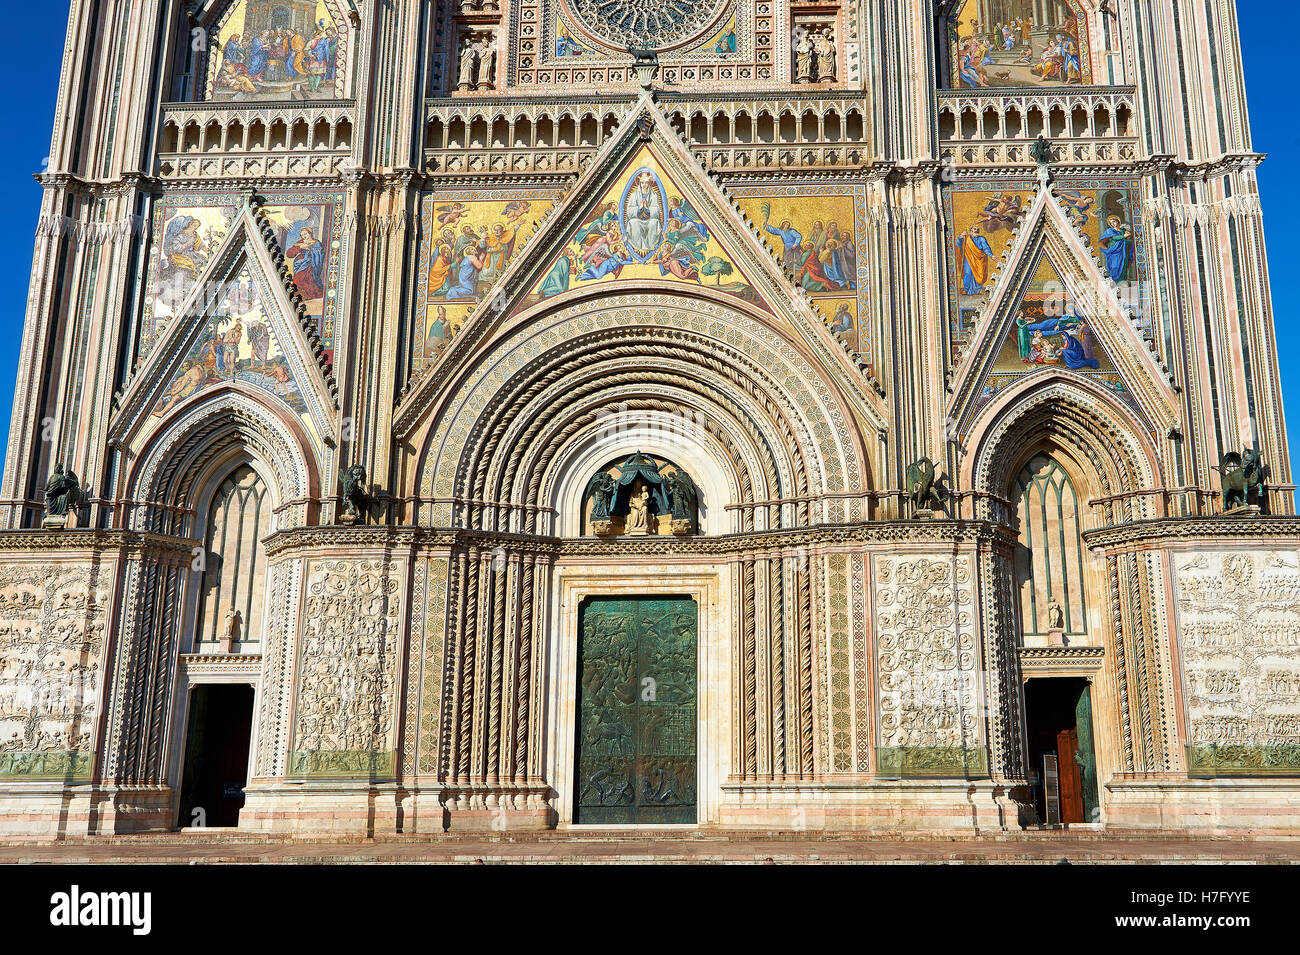 Detail of the Tuscan Gothic facade of the14th century Orvieto Duomo Cathedral, Umbria, Italy - Stock Image